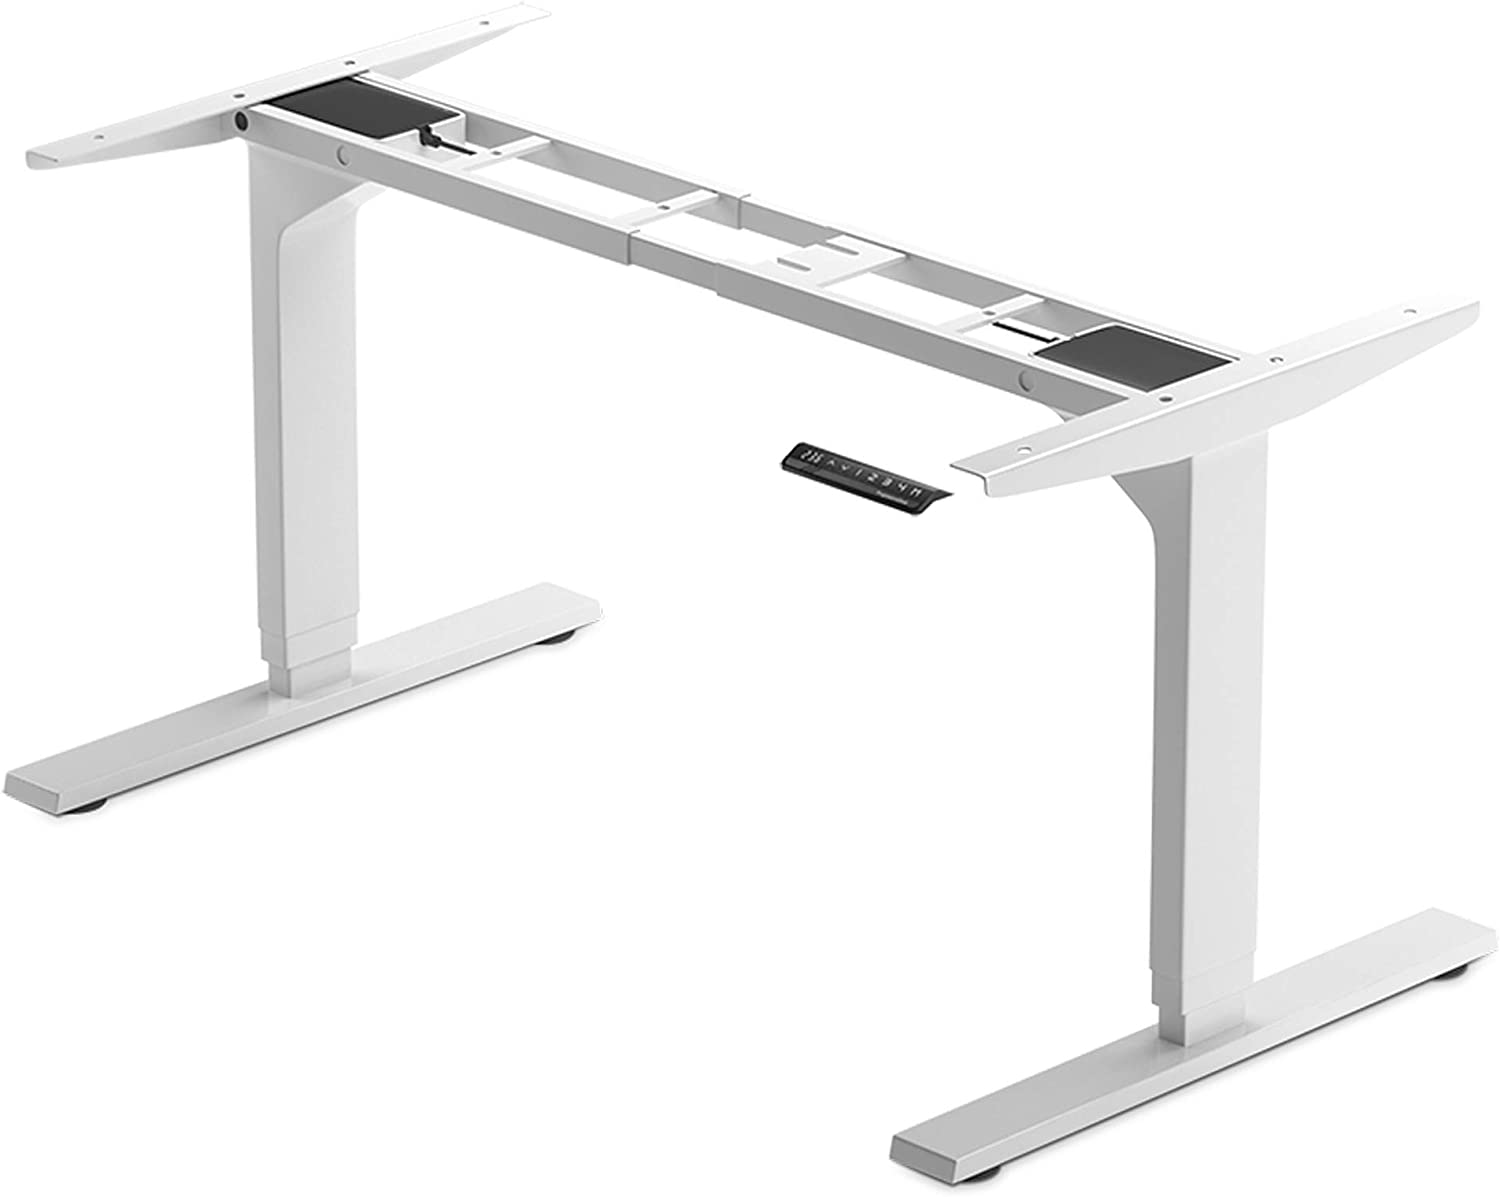 """Standing Desk Legs Dual Motor, Adjustable Height and Width, 3 Stages Frame for sit Stand Home Office desks 